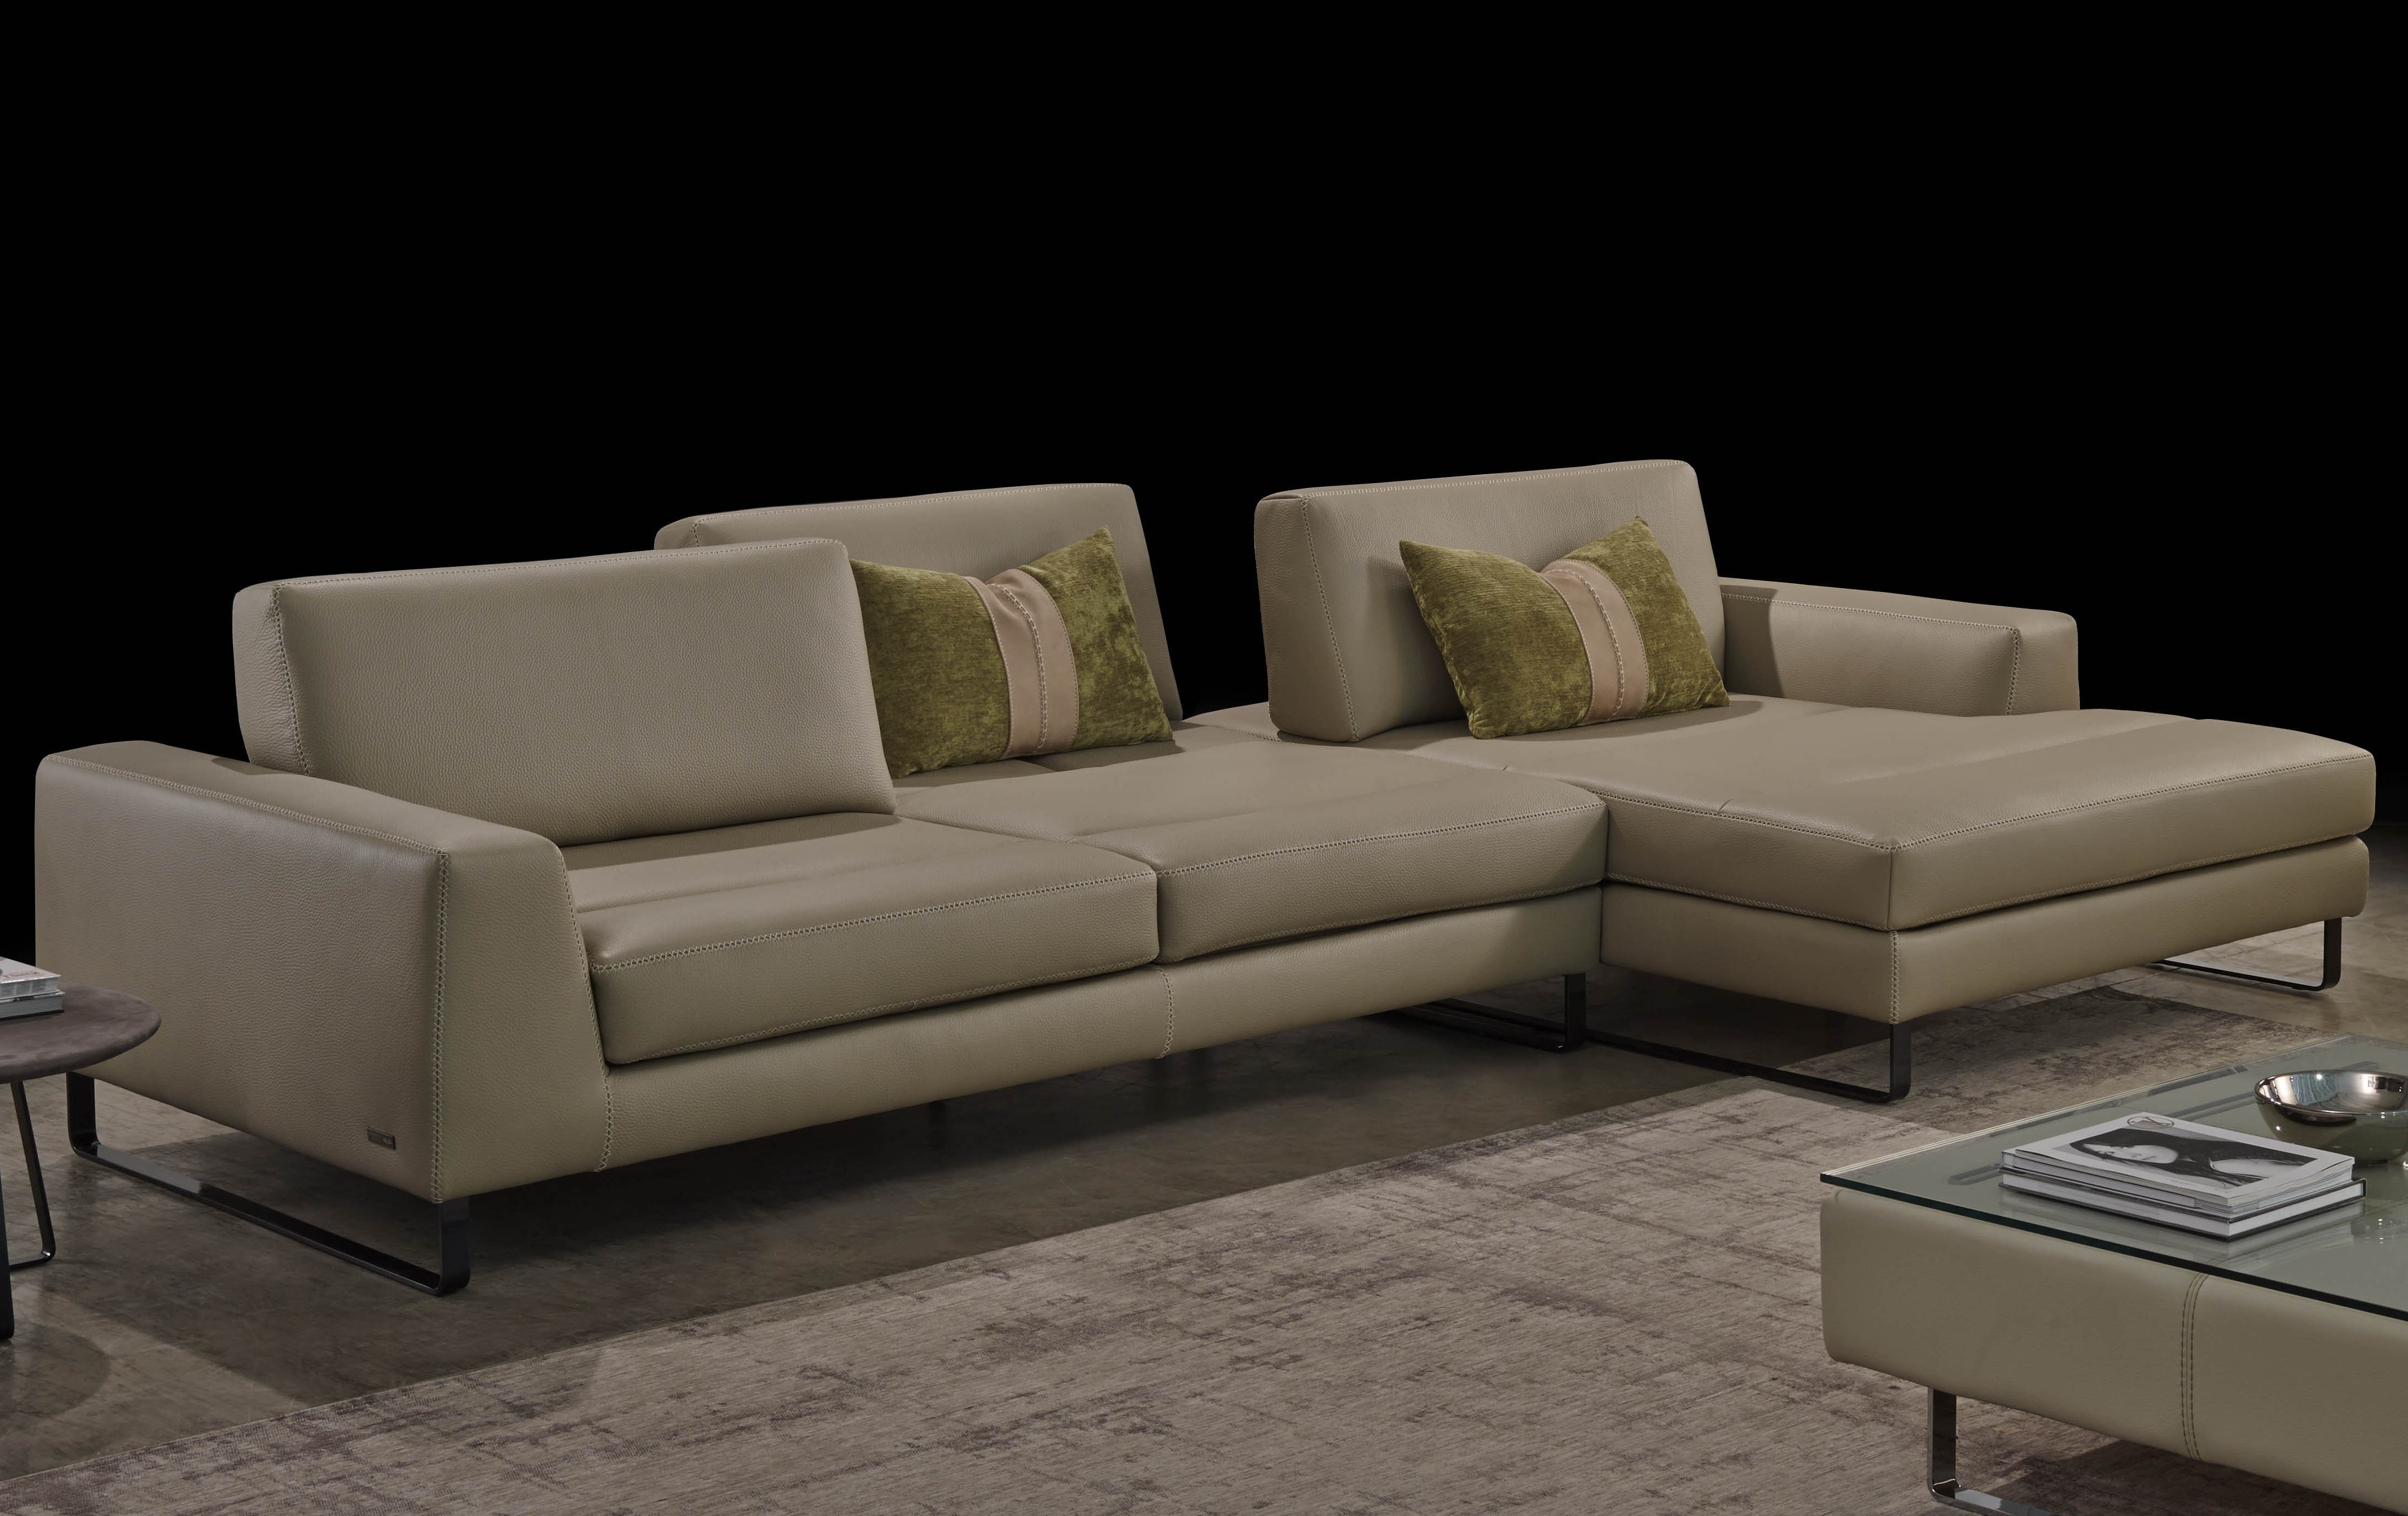 Widely Used Urban Sectional, Gamma International Italy – Italmoda Furniture Store For Nashua Nh Sectional Sofas (View 14 of 20)